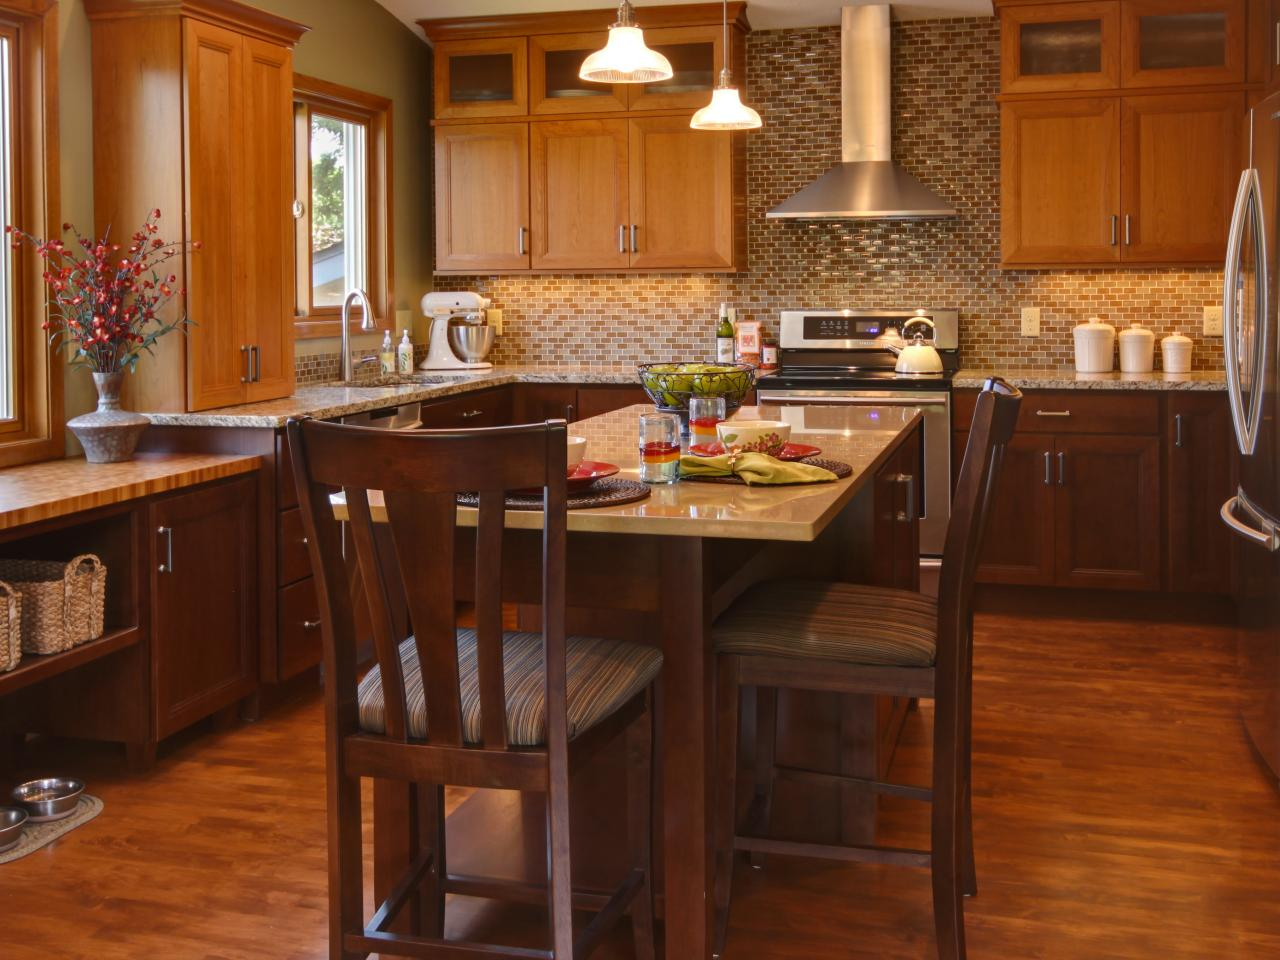 Kitchen Cabinet Paint Colors Pictures Ideas From Hgtv: Best Colors To Paint A Kitchen: Pictures & Ideas From HGTV